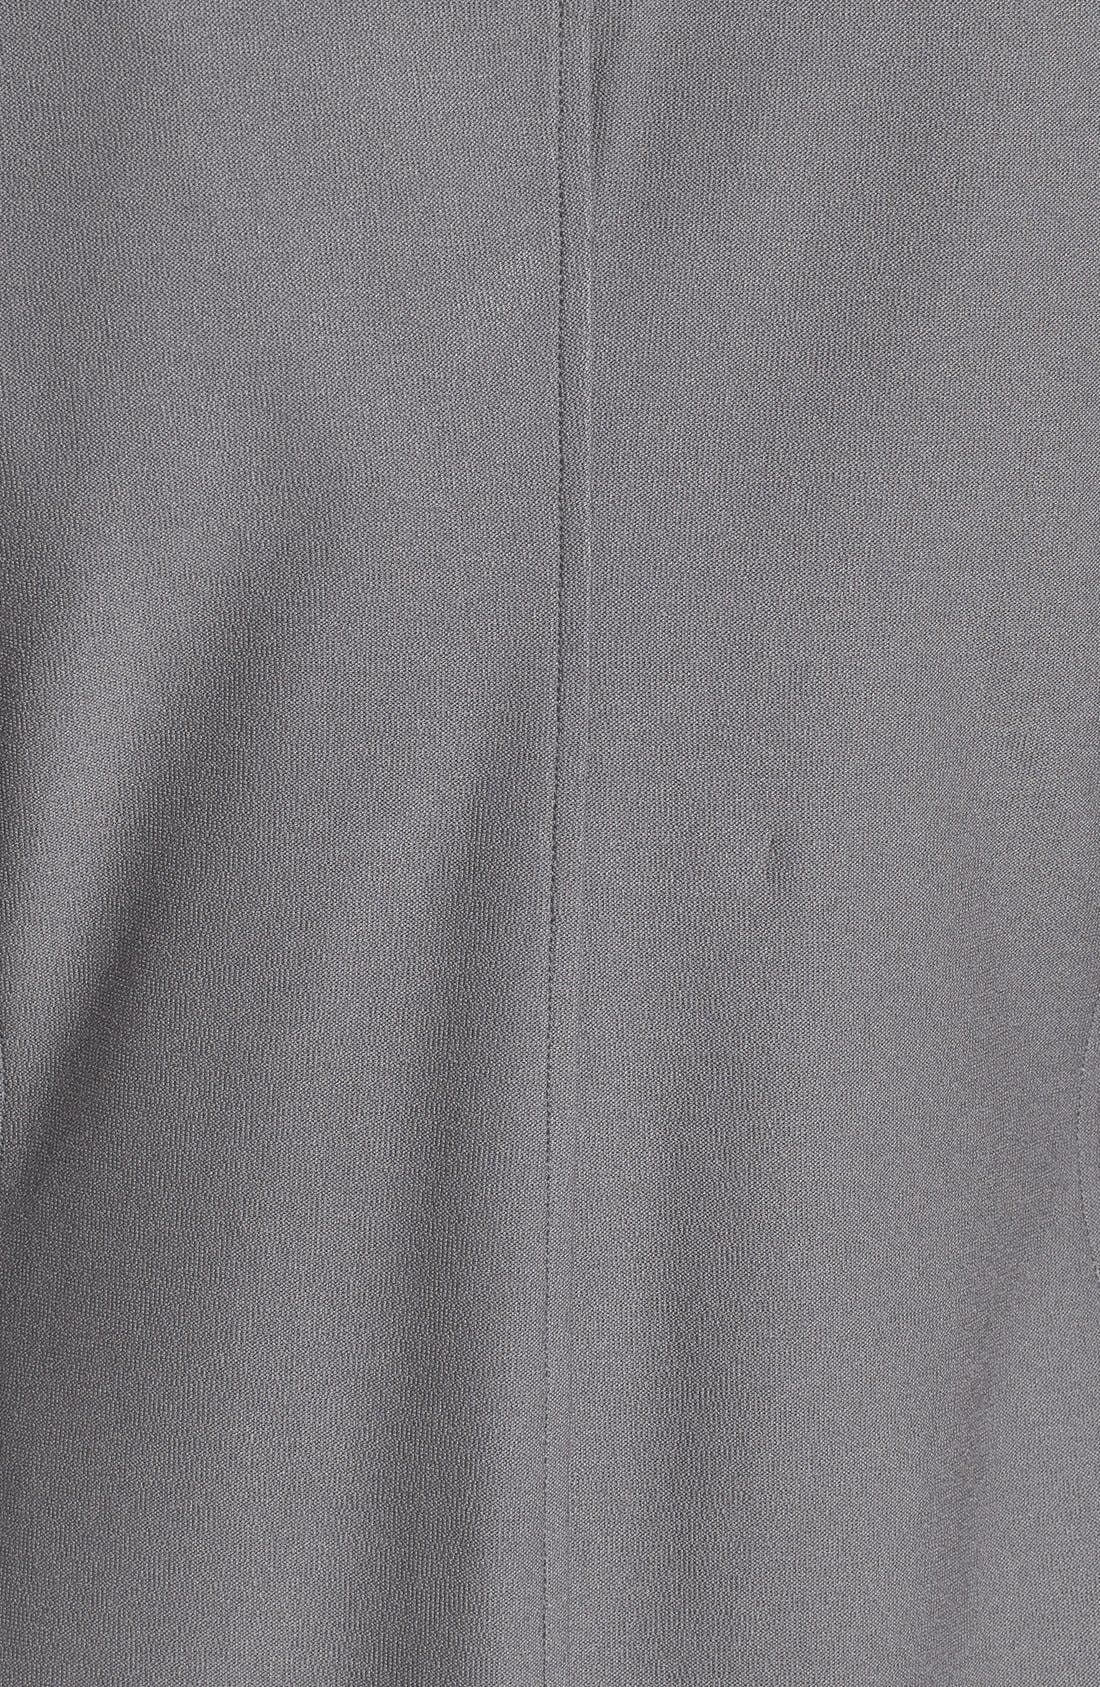 Washable Stretch Crepe Stand Collar Jacket,                             Alternate thumbnail 12, color,